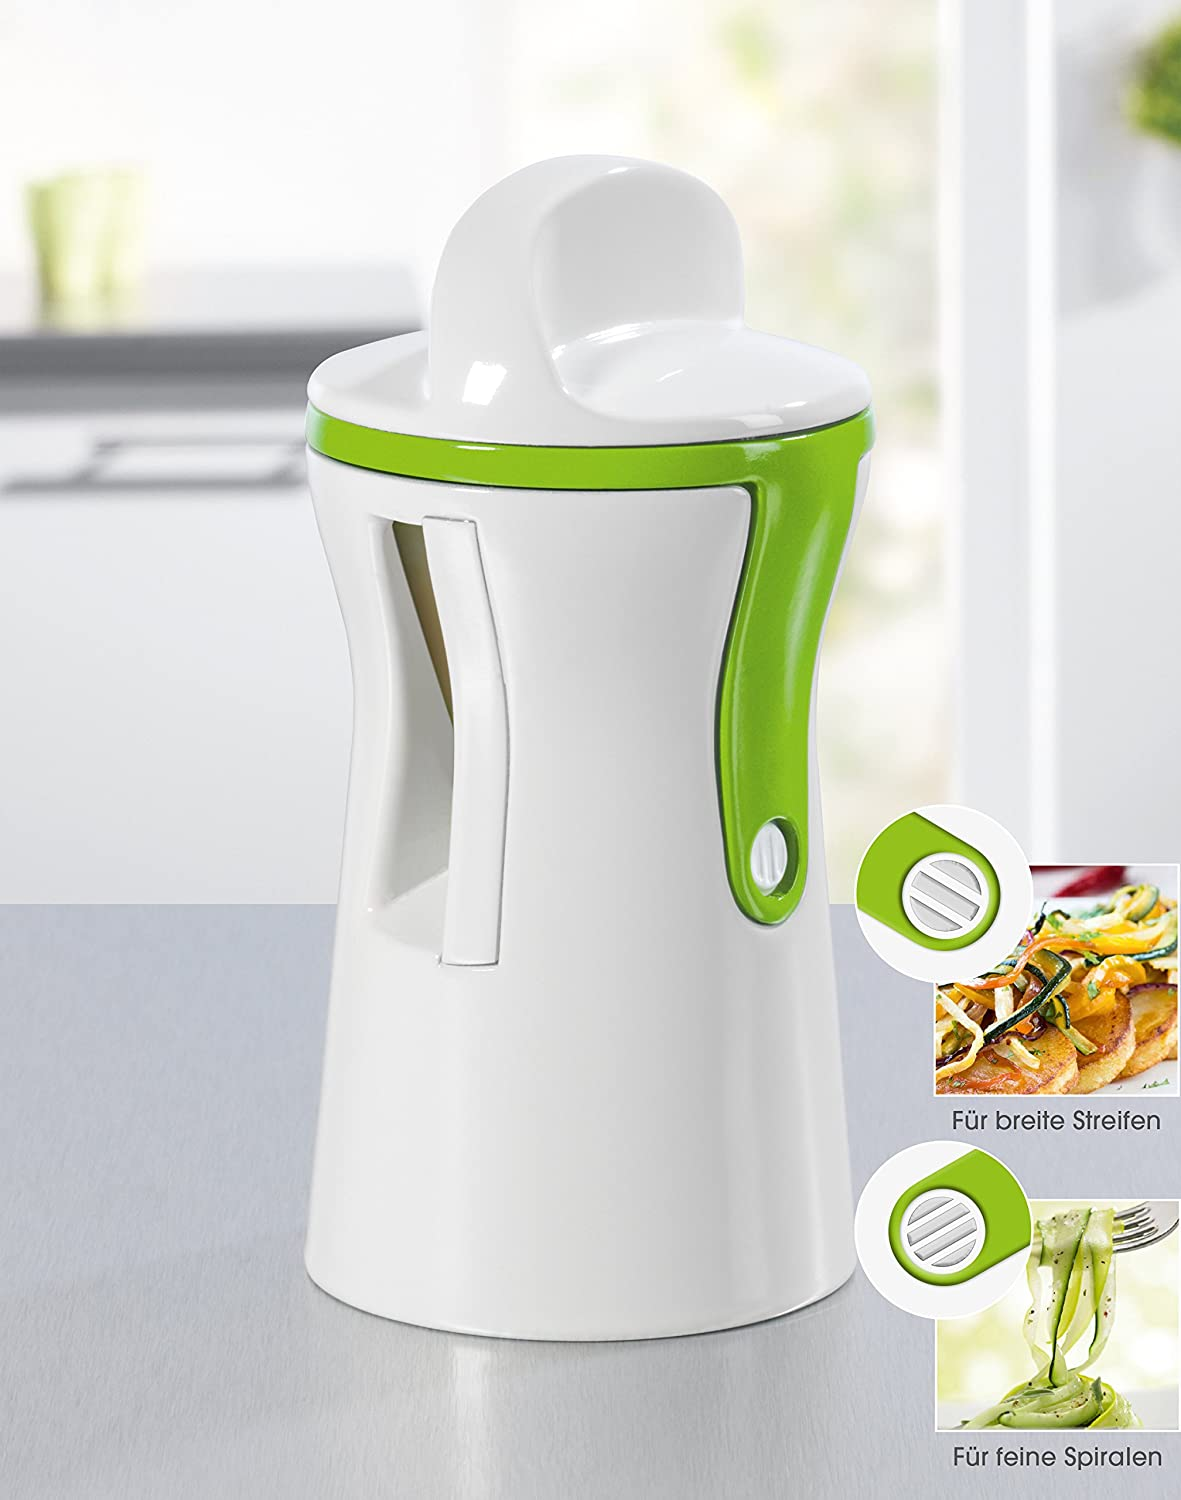 GOURMETmaxx 07293 Julienne And Vegetable Spiralizer | Compact Spiralizer | Fruit And Vegetable Slicer